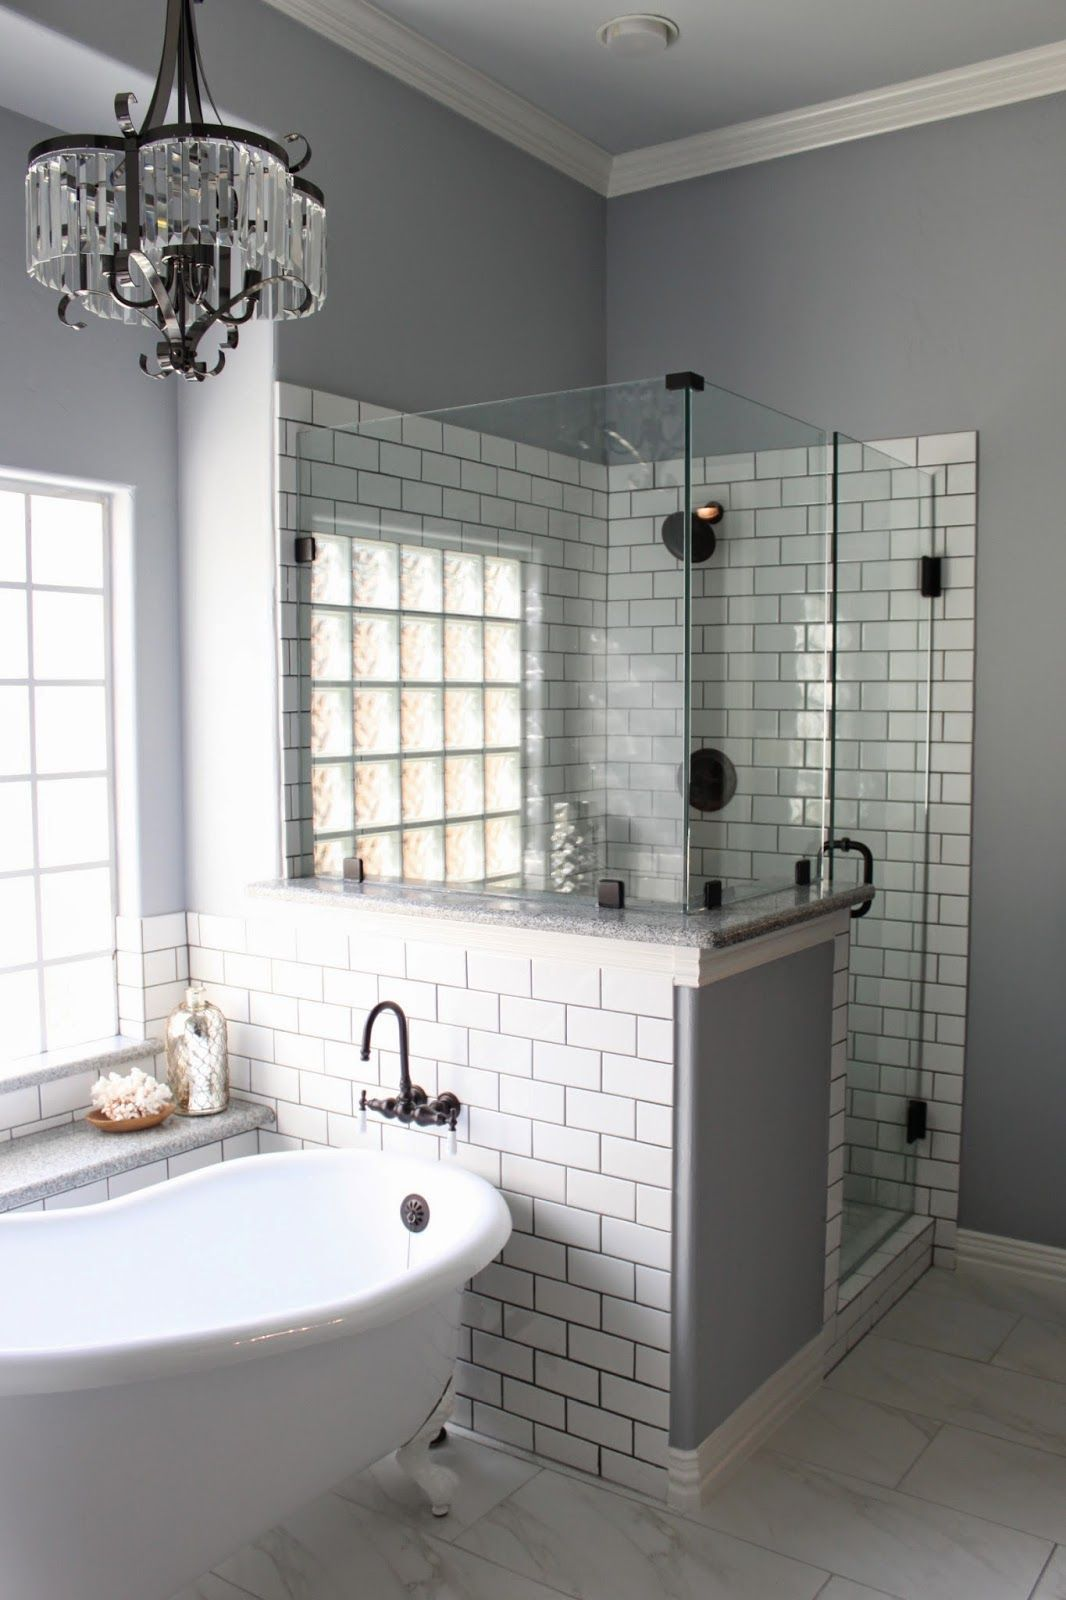 Fresh And Stylish Small Bathroom Remodel Add Storage Ideas Before After On A Budget Diy Rustic E Saving Shower